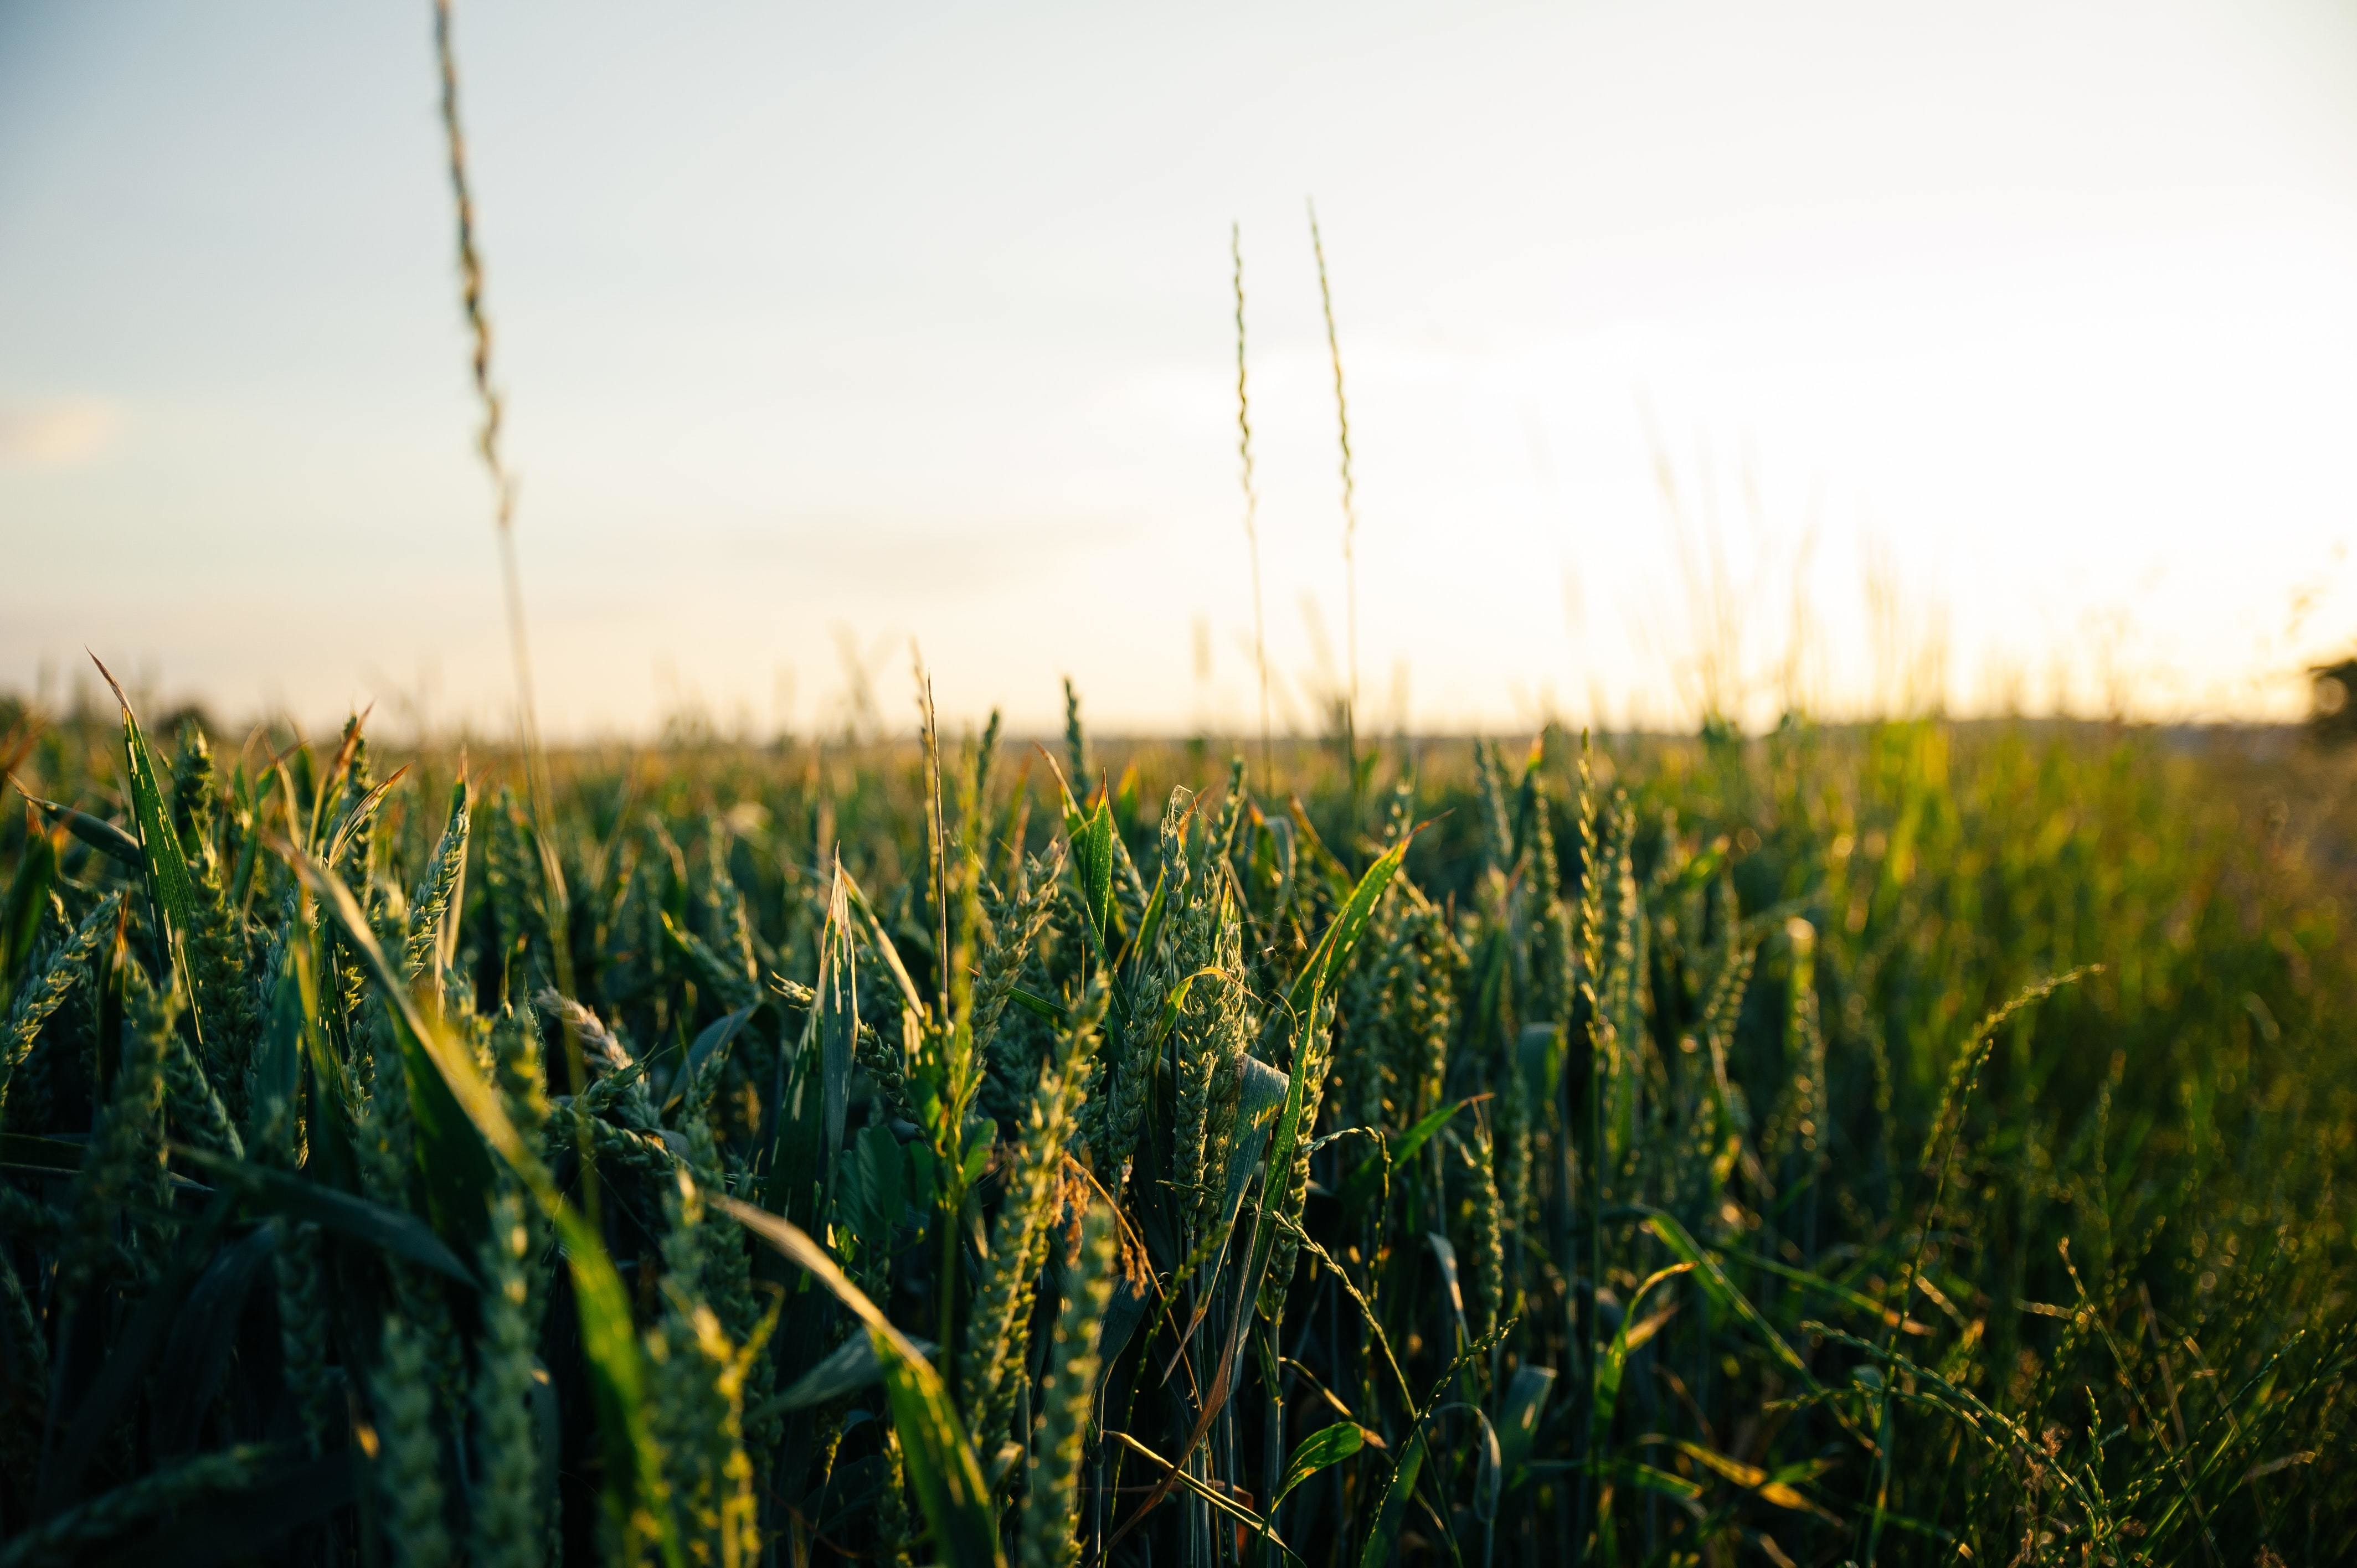 A new scientific substance can protect crops like these from drought, when applied to seeds.